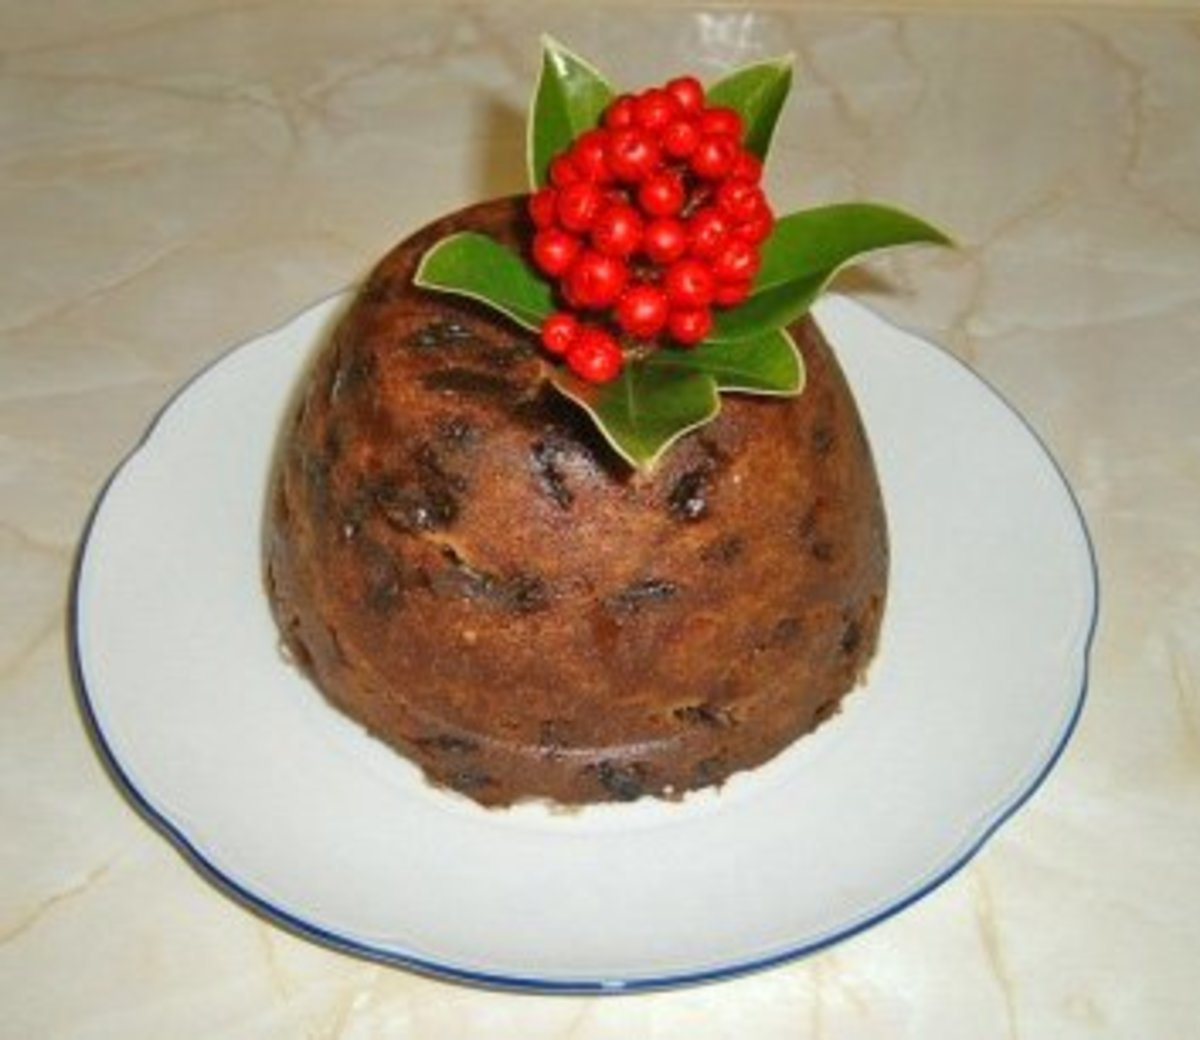 History of Figgy Pudding - Origins and Traditions